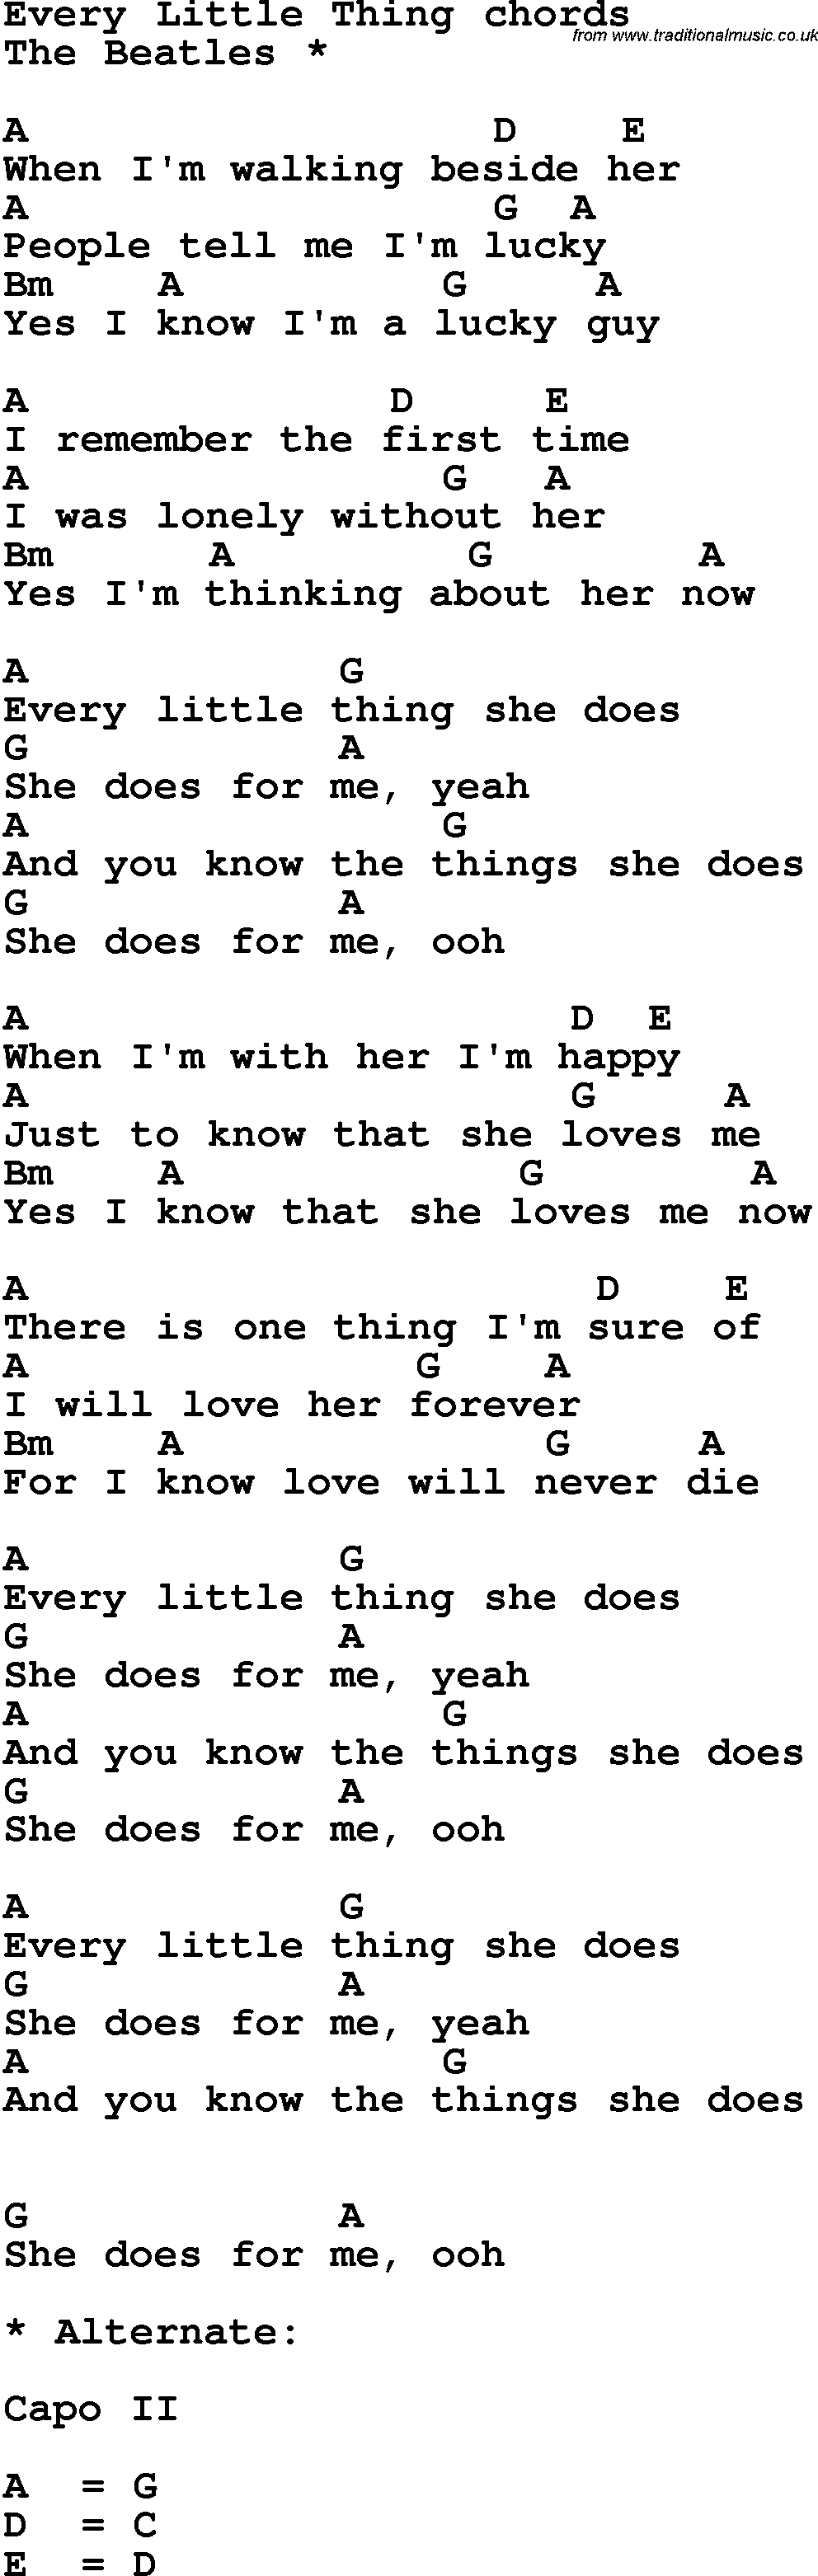 Song lyrics with guitar chords for every little thing song lyrics with guitar chords for every little thing hexwebz Images